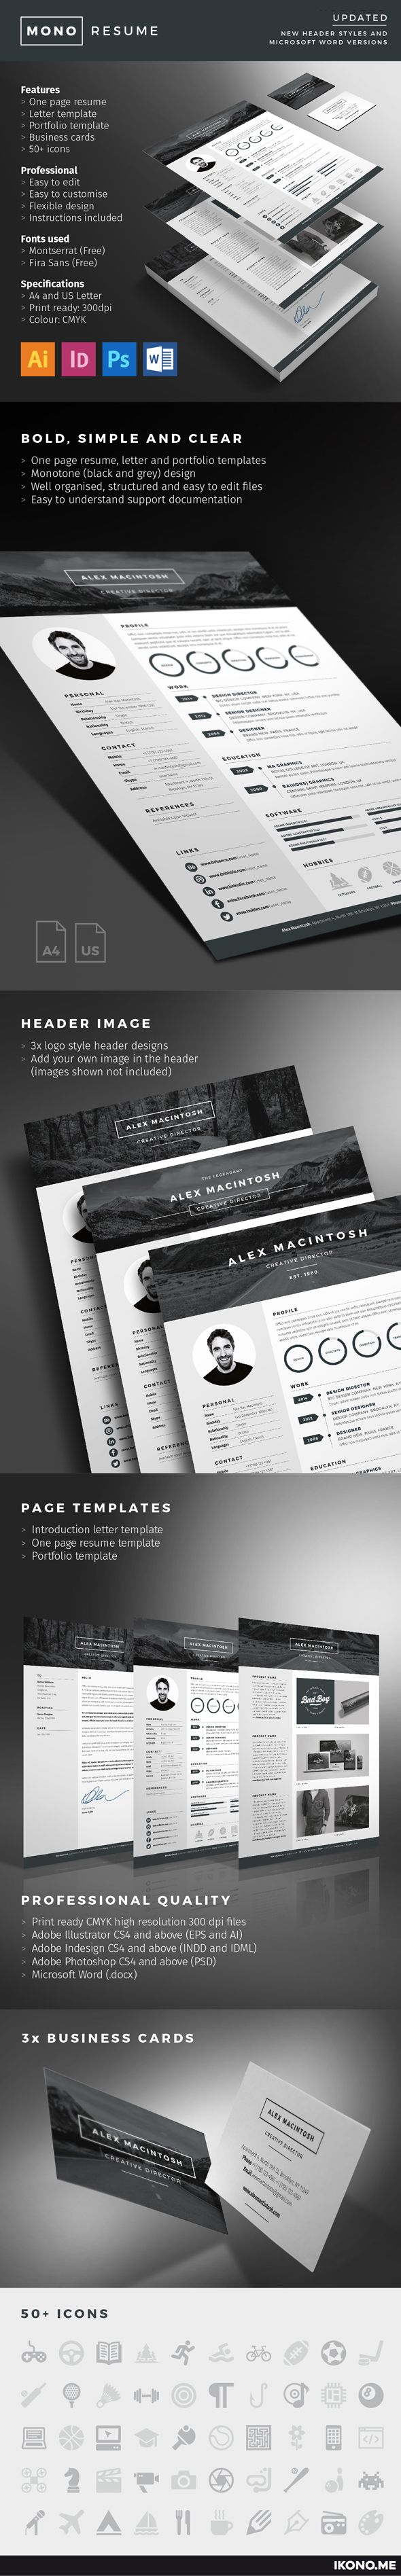 1000 ideas about easy resume template resume 1000 ideas about easy resume template resume outline sample of a cv and resume